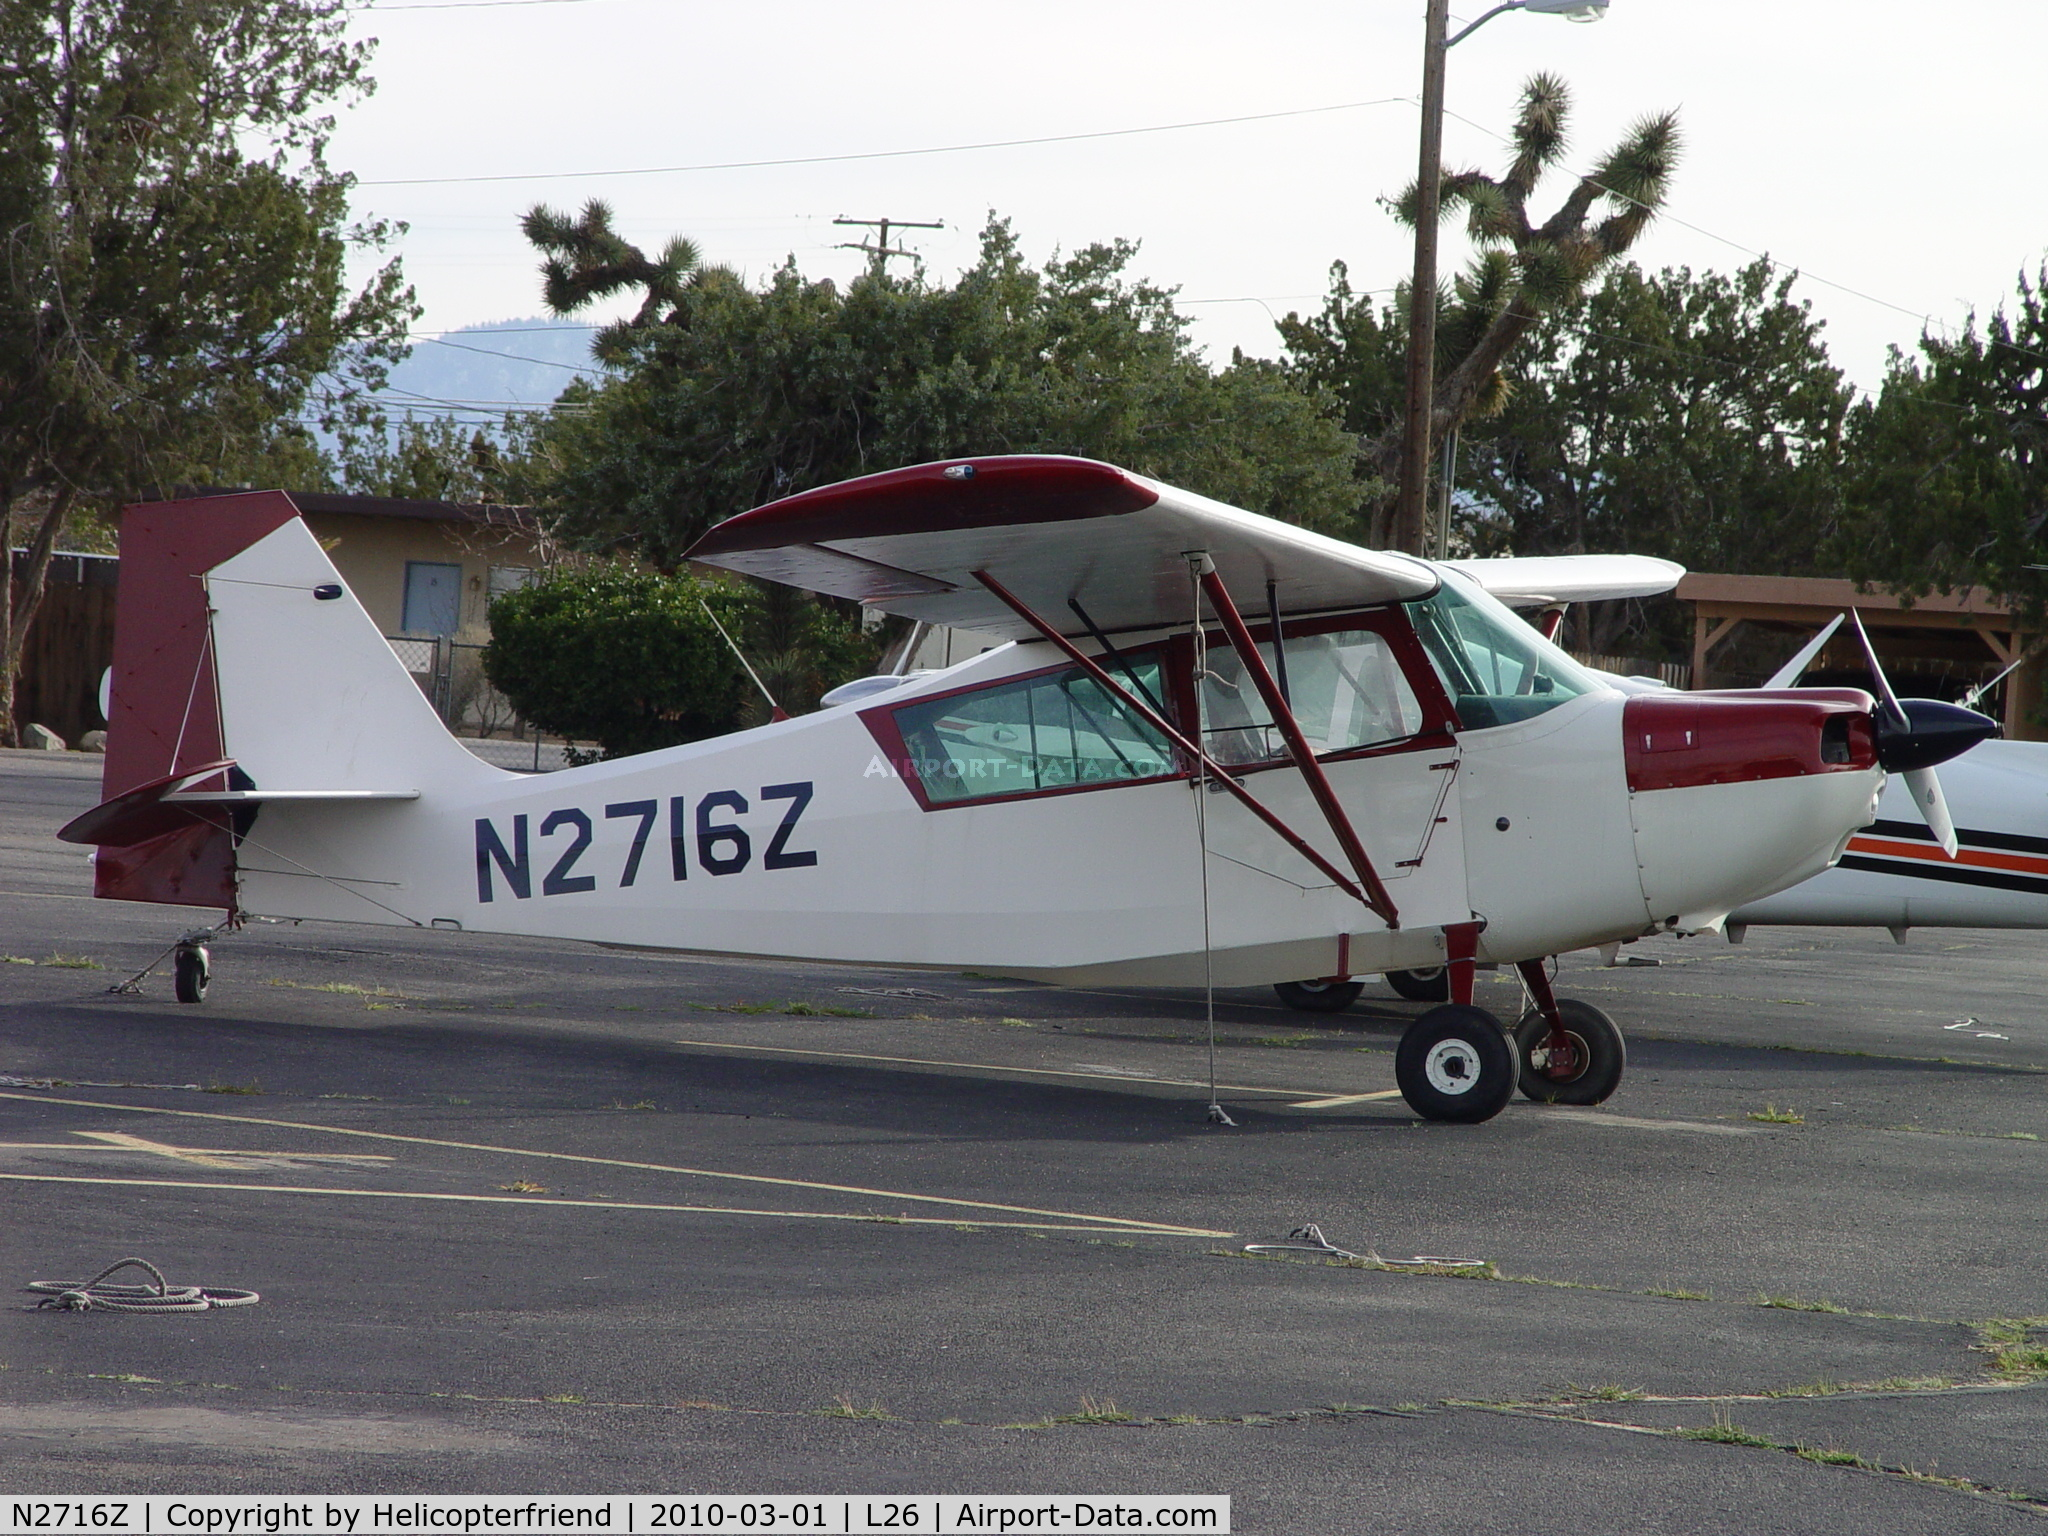 N2716Z, 1978 Bellanca 7GCAA C/N 354-78, Parked at Hesperia Airport